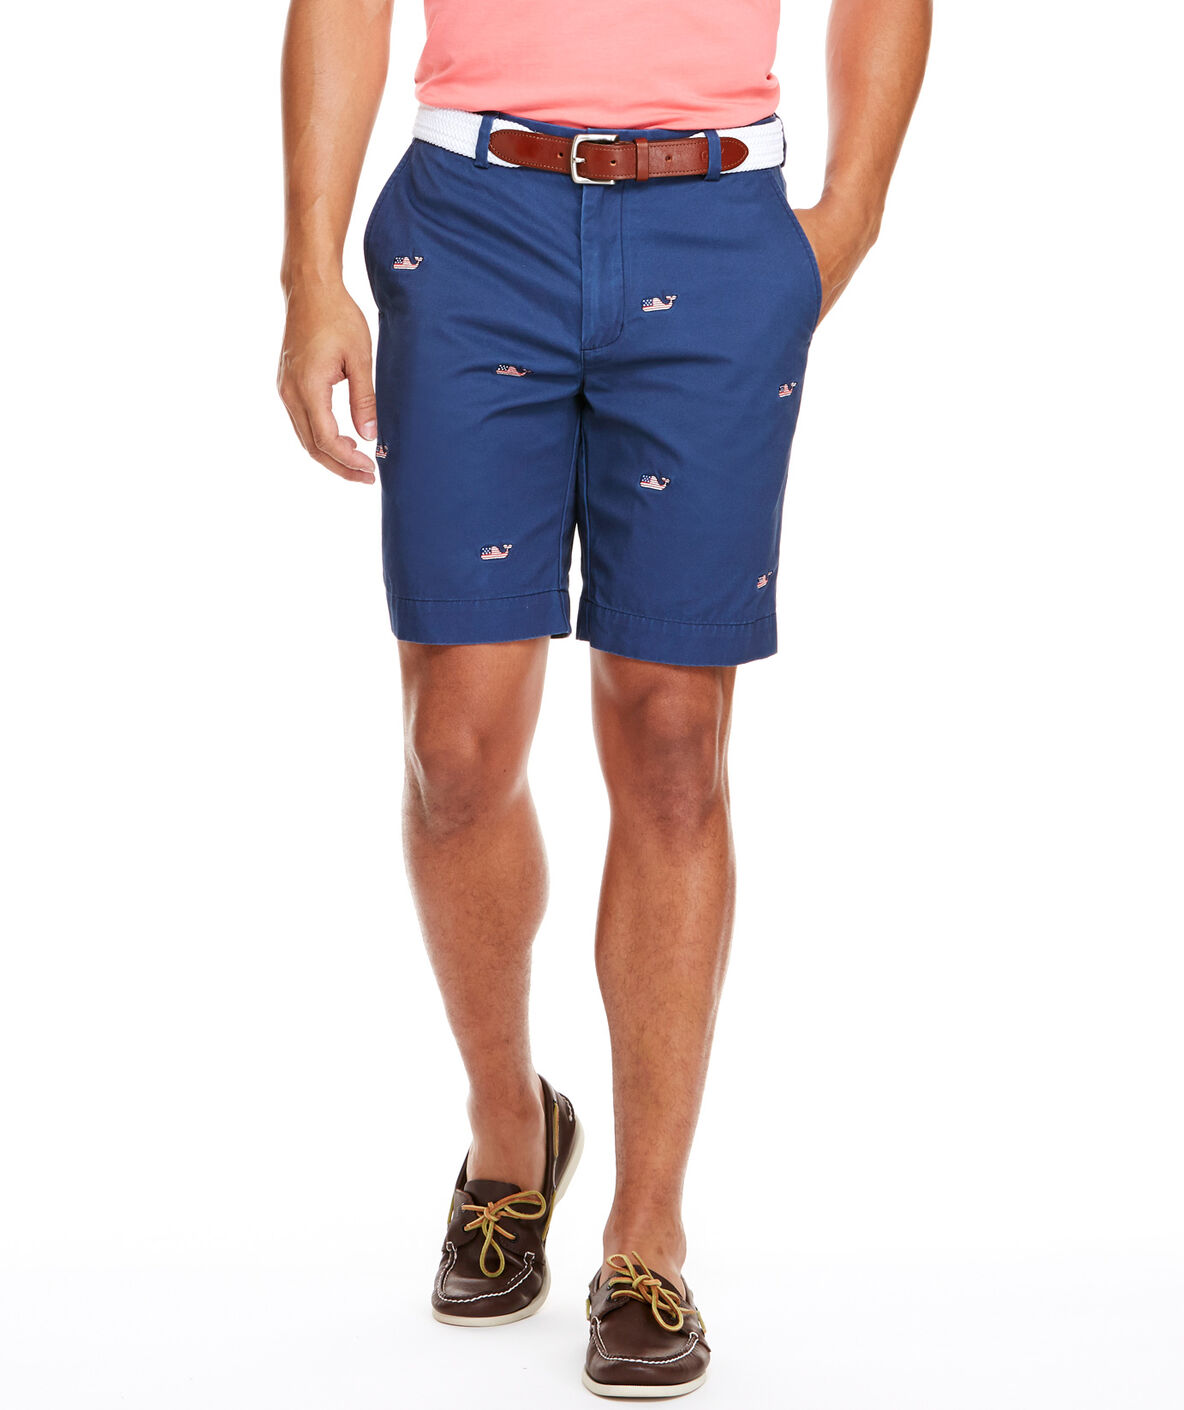 Shop 9 Inch Flag Whale Embroidered Breaker Shorts at vineyard vines